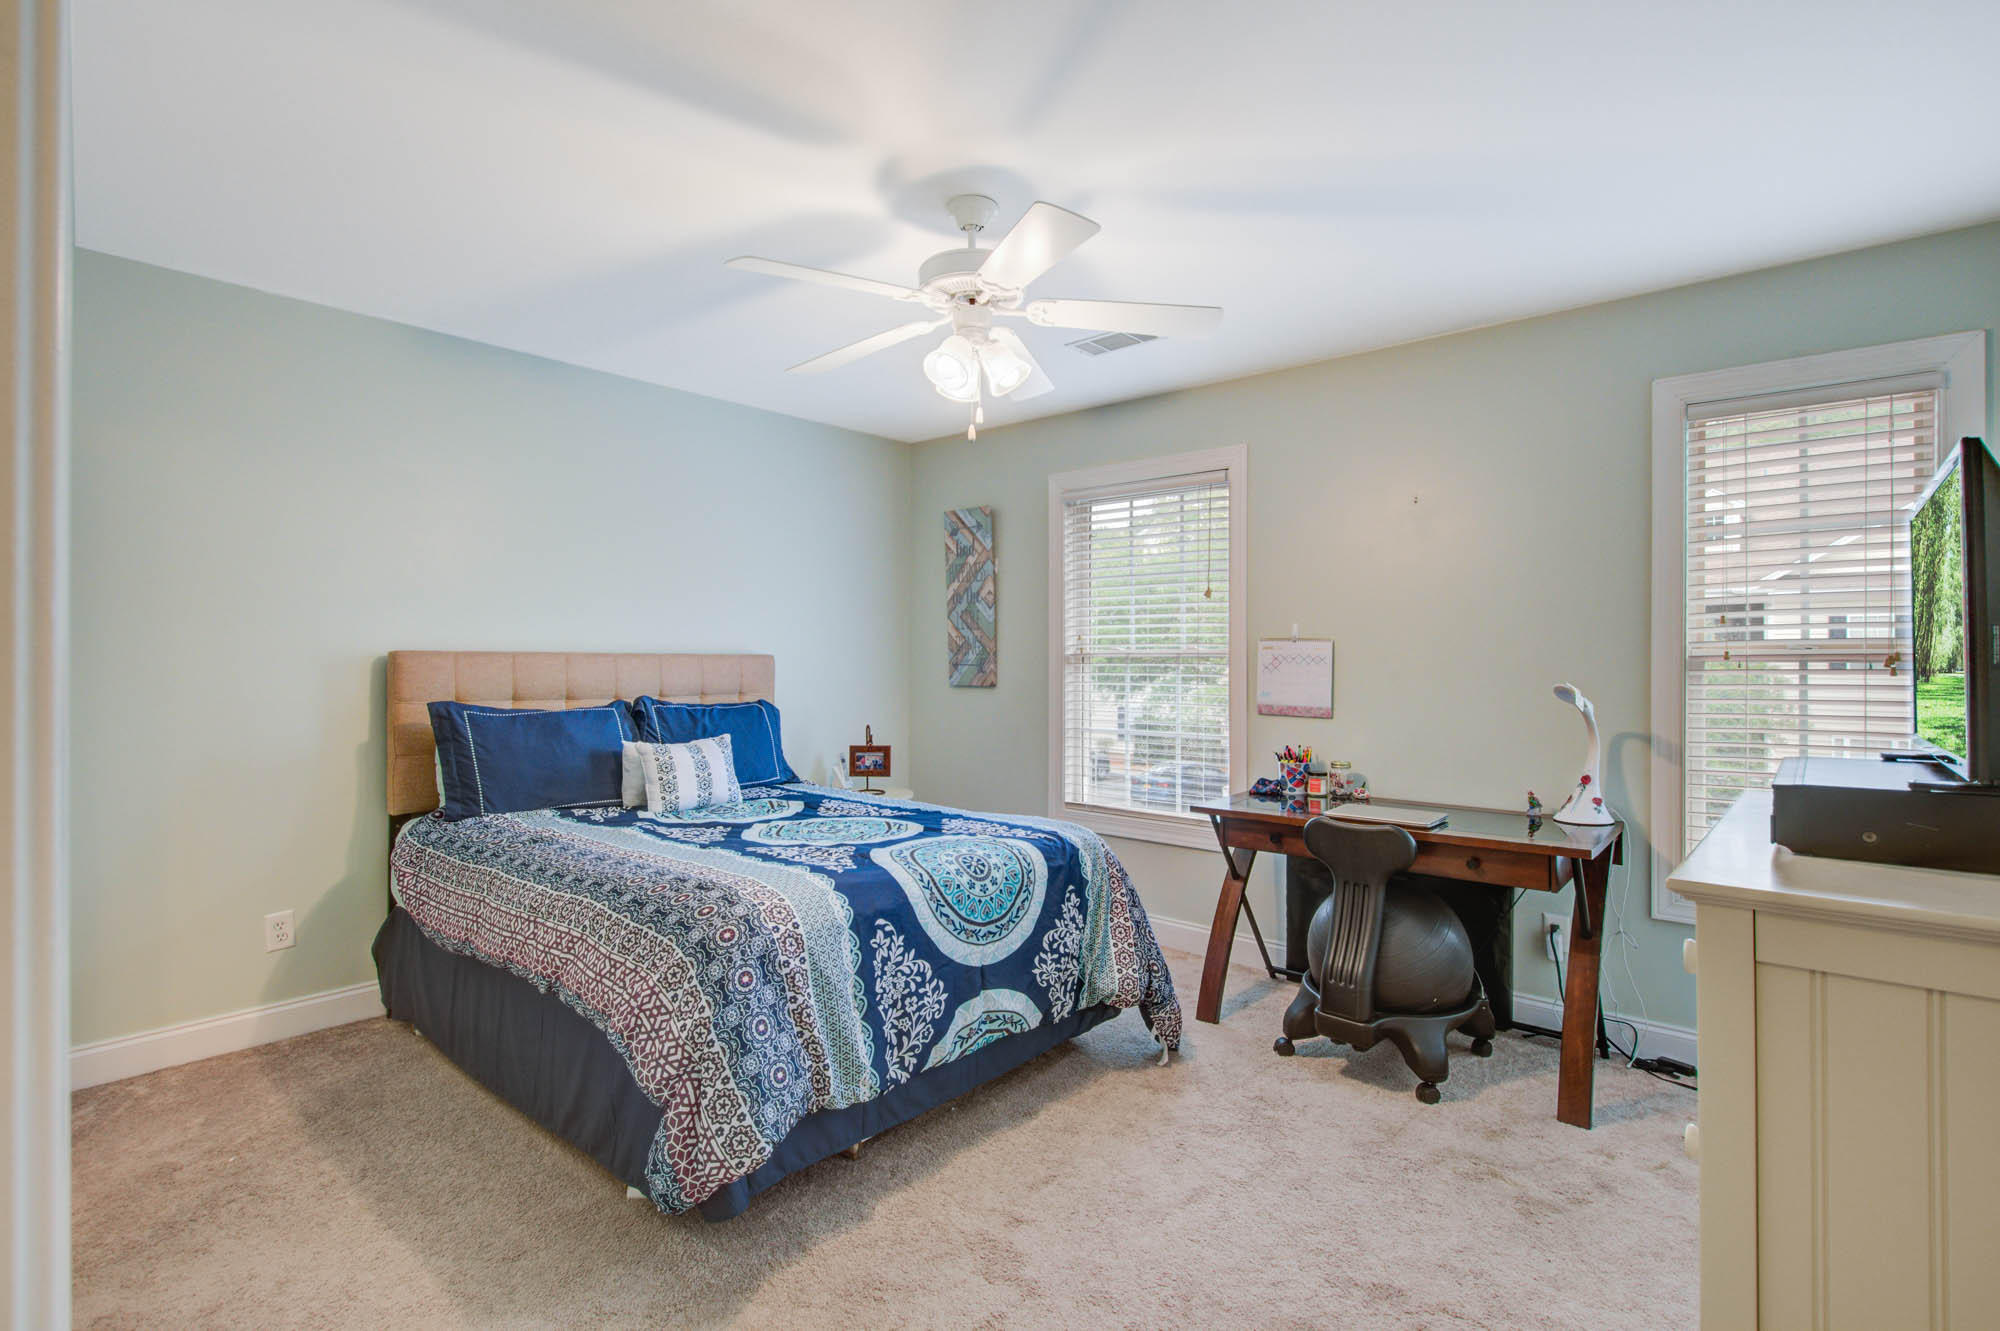 Radcliffe Place Homes For Sale - 4002 Radcliffe, Charleston, SC - 18